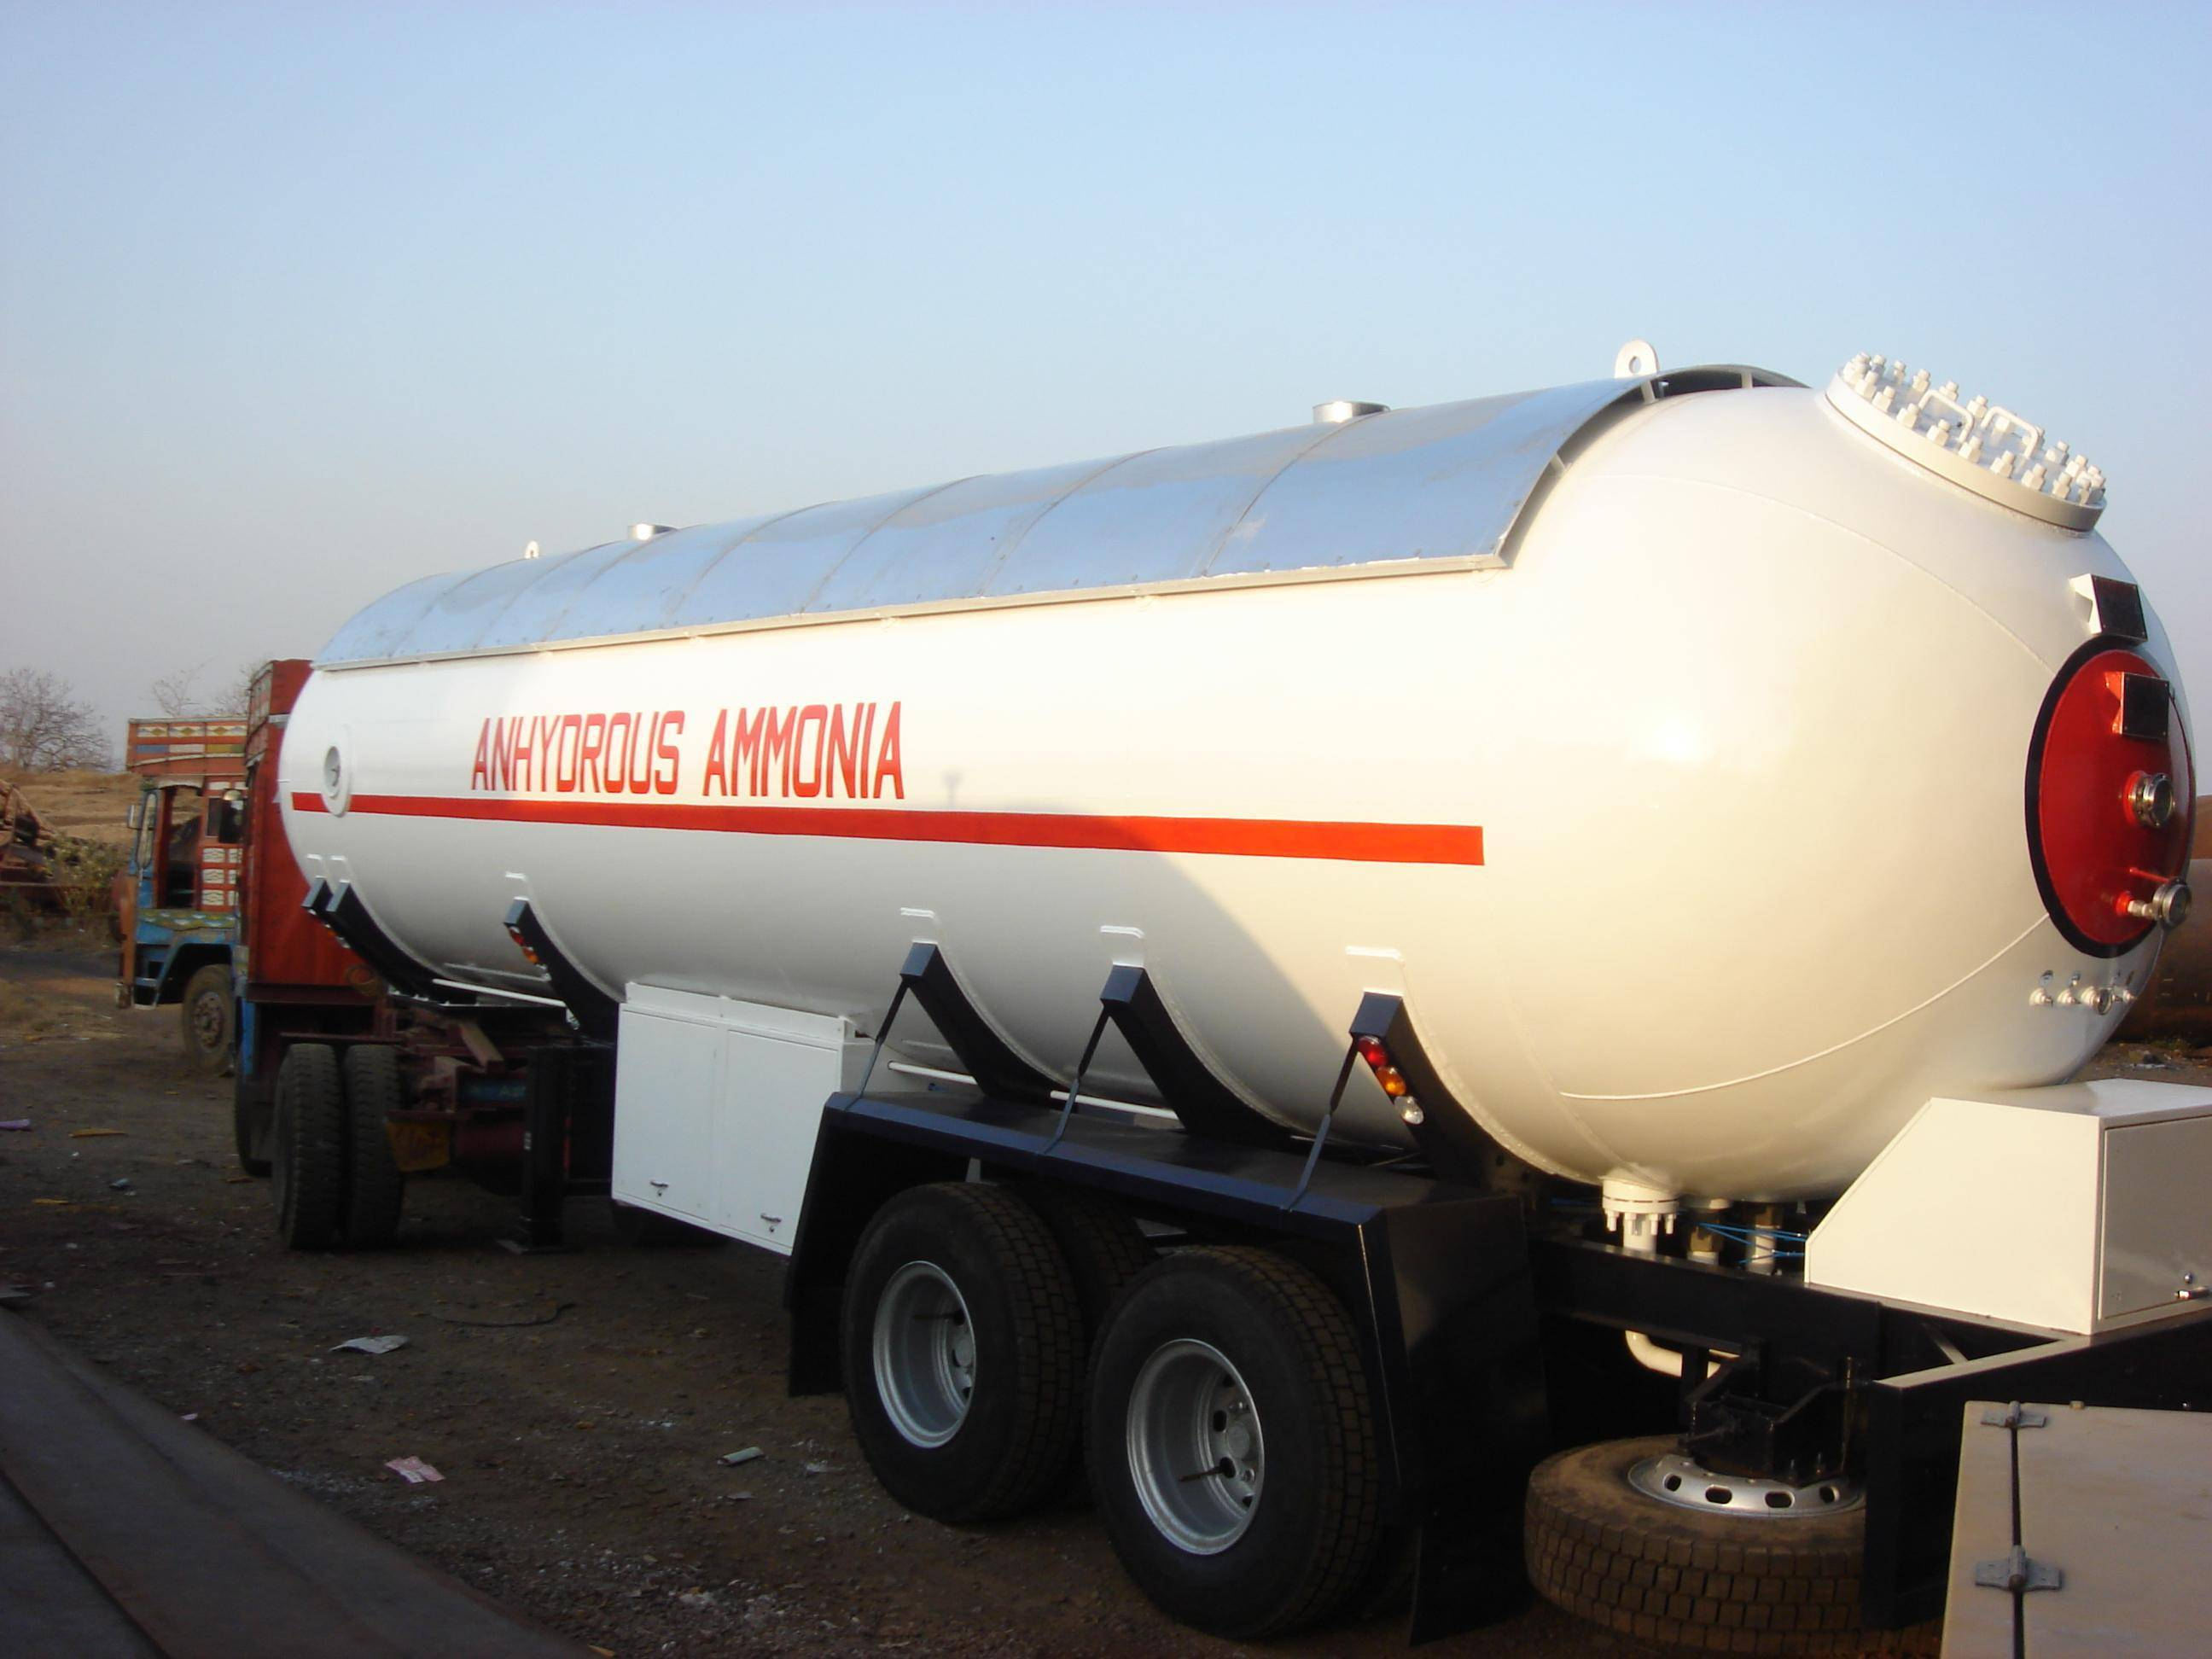 Anhydrous Ammonia transport tanker